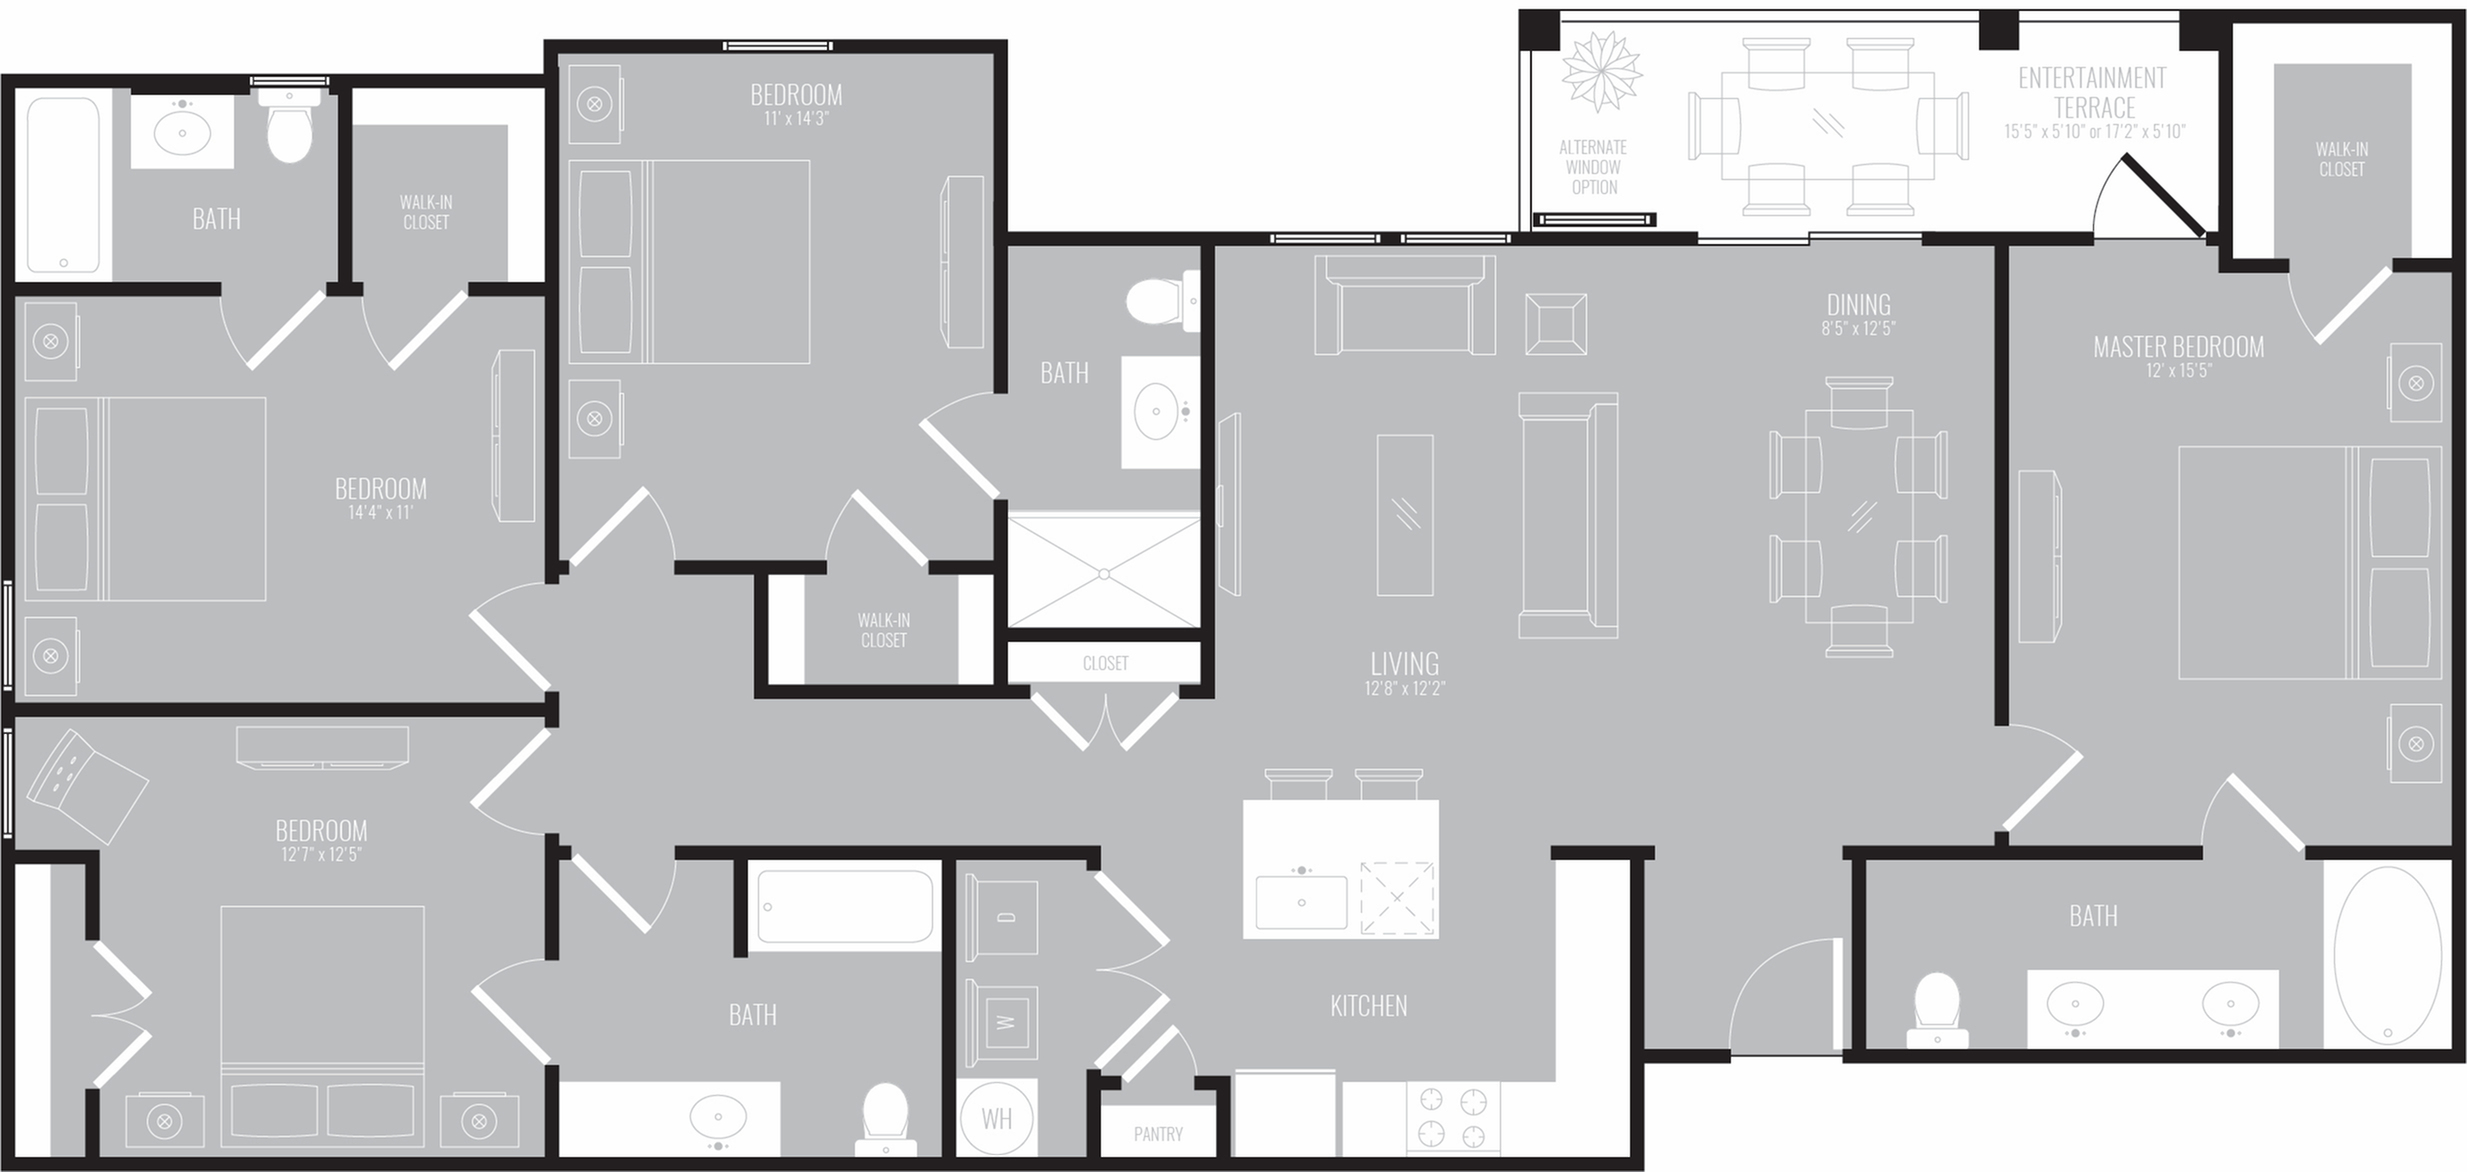 4 Bedroom Floor Plan | Apartments Rowlett Texas | The Mansions at Bayside